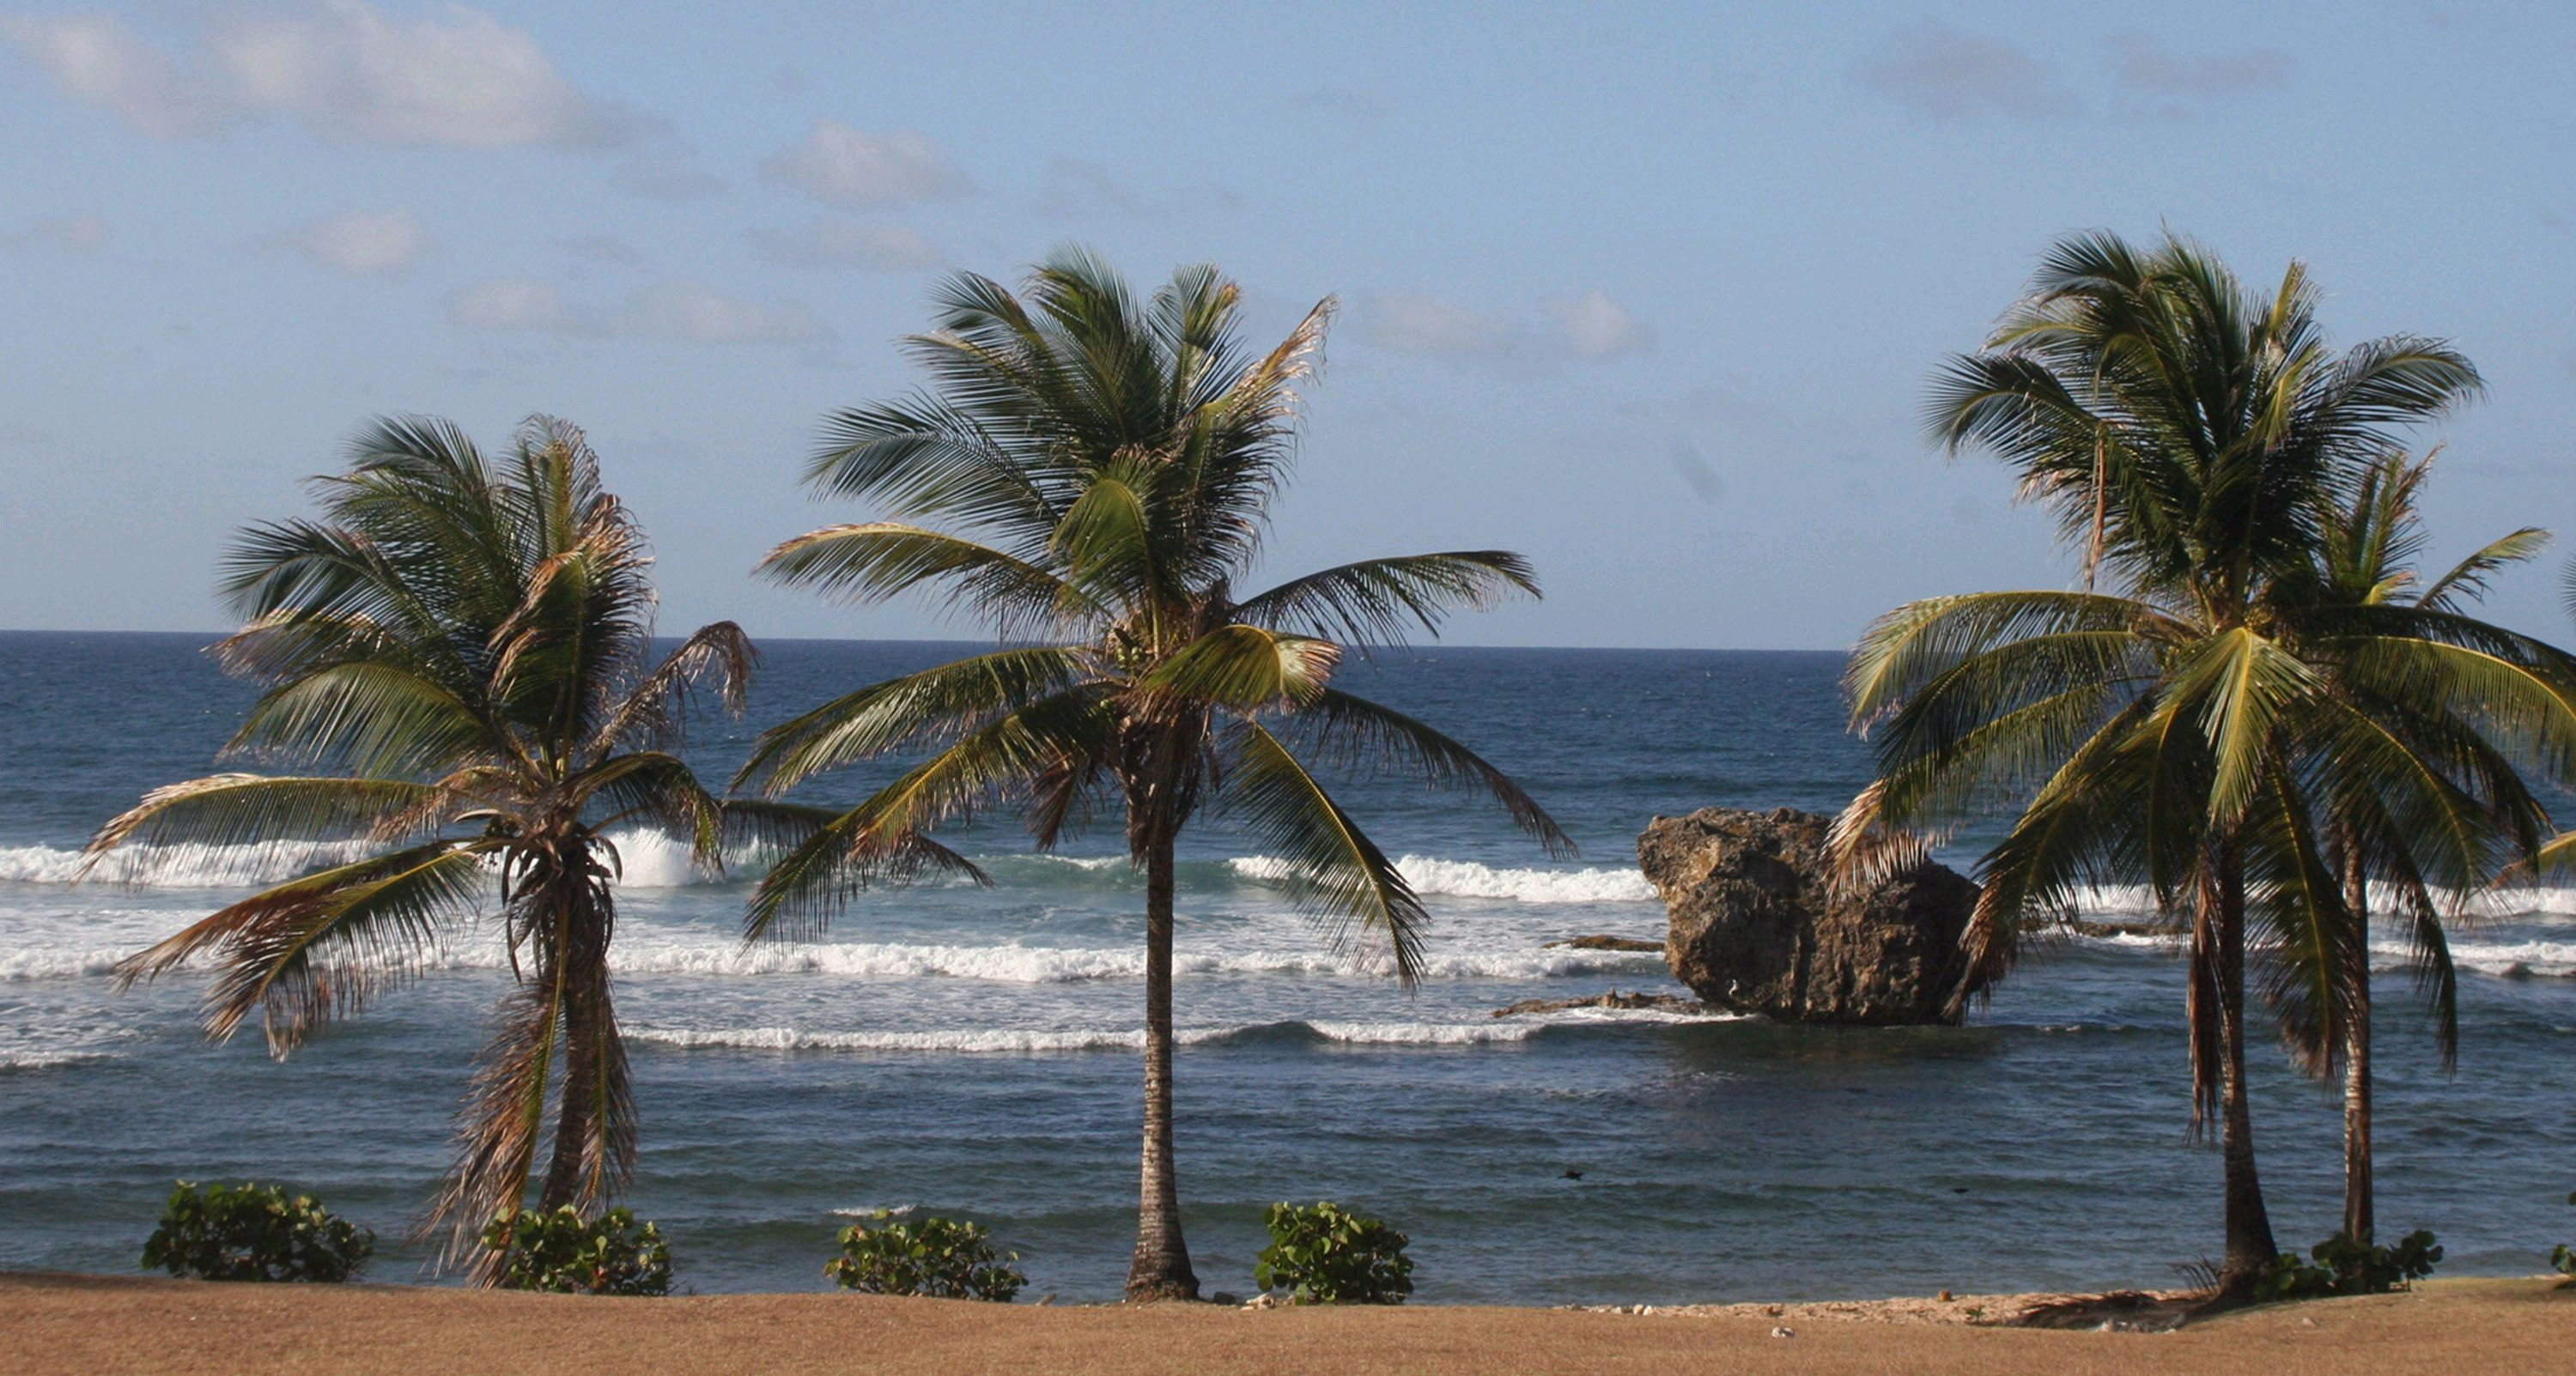 Palm trees line the shore as waves crash over boulders on the East coast of Barbados.